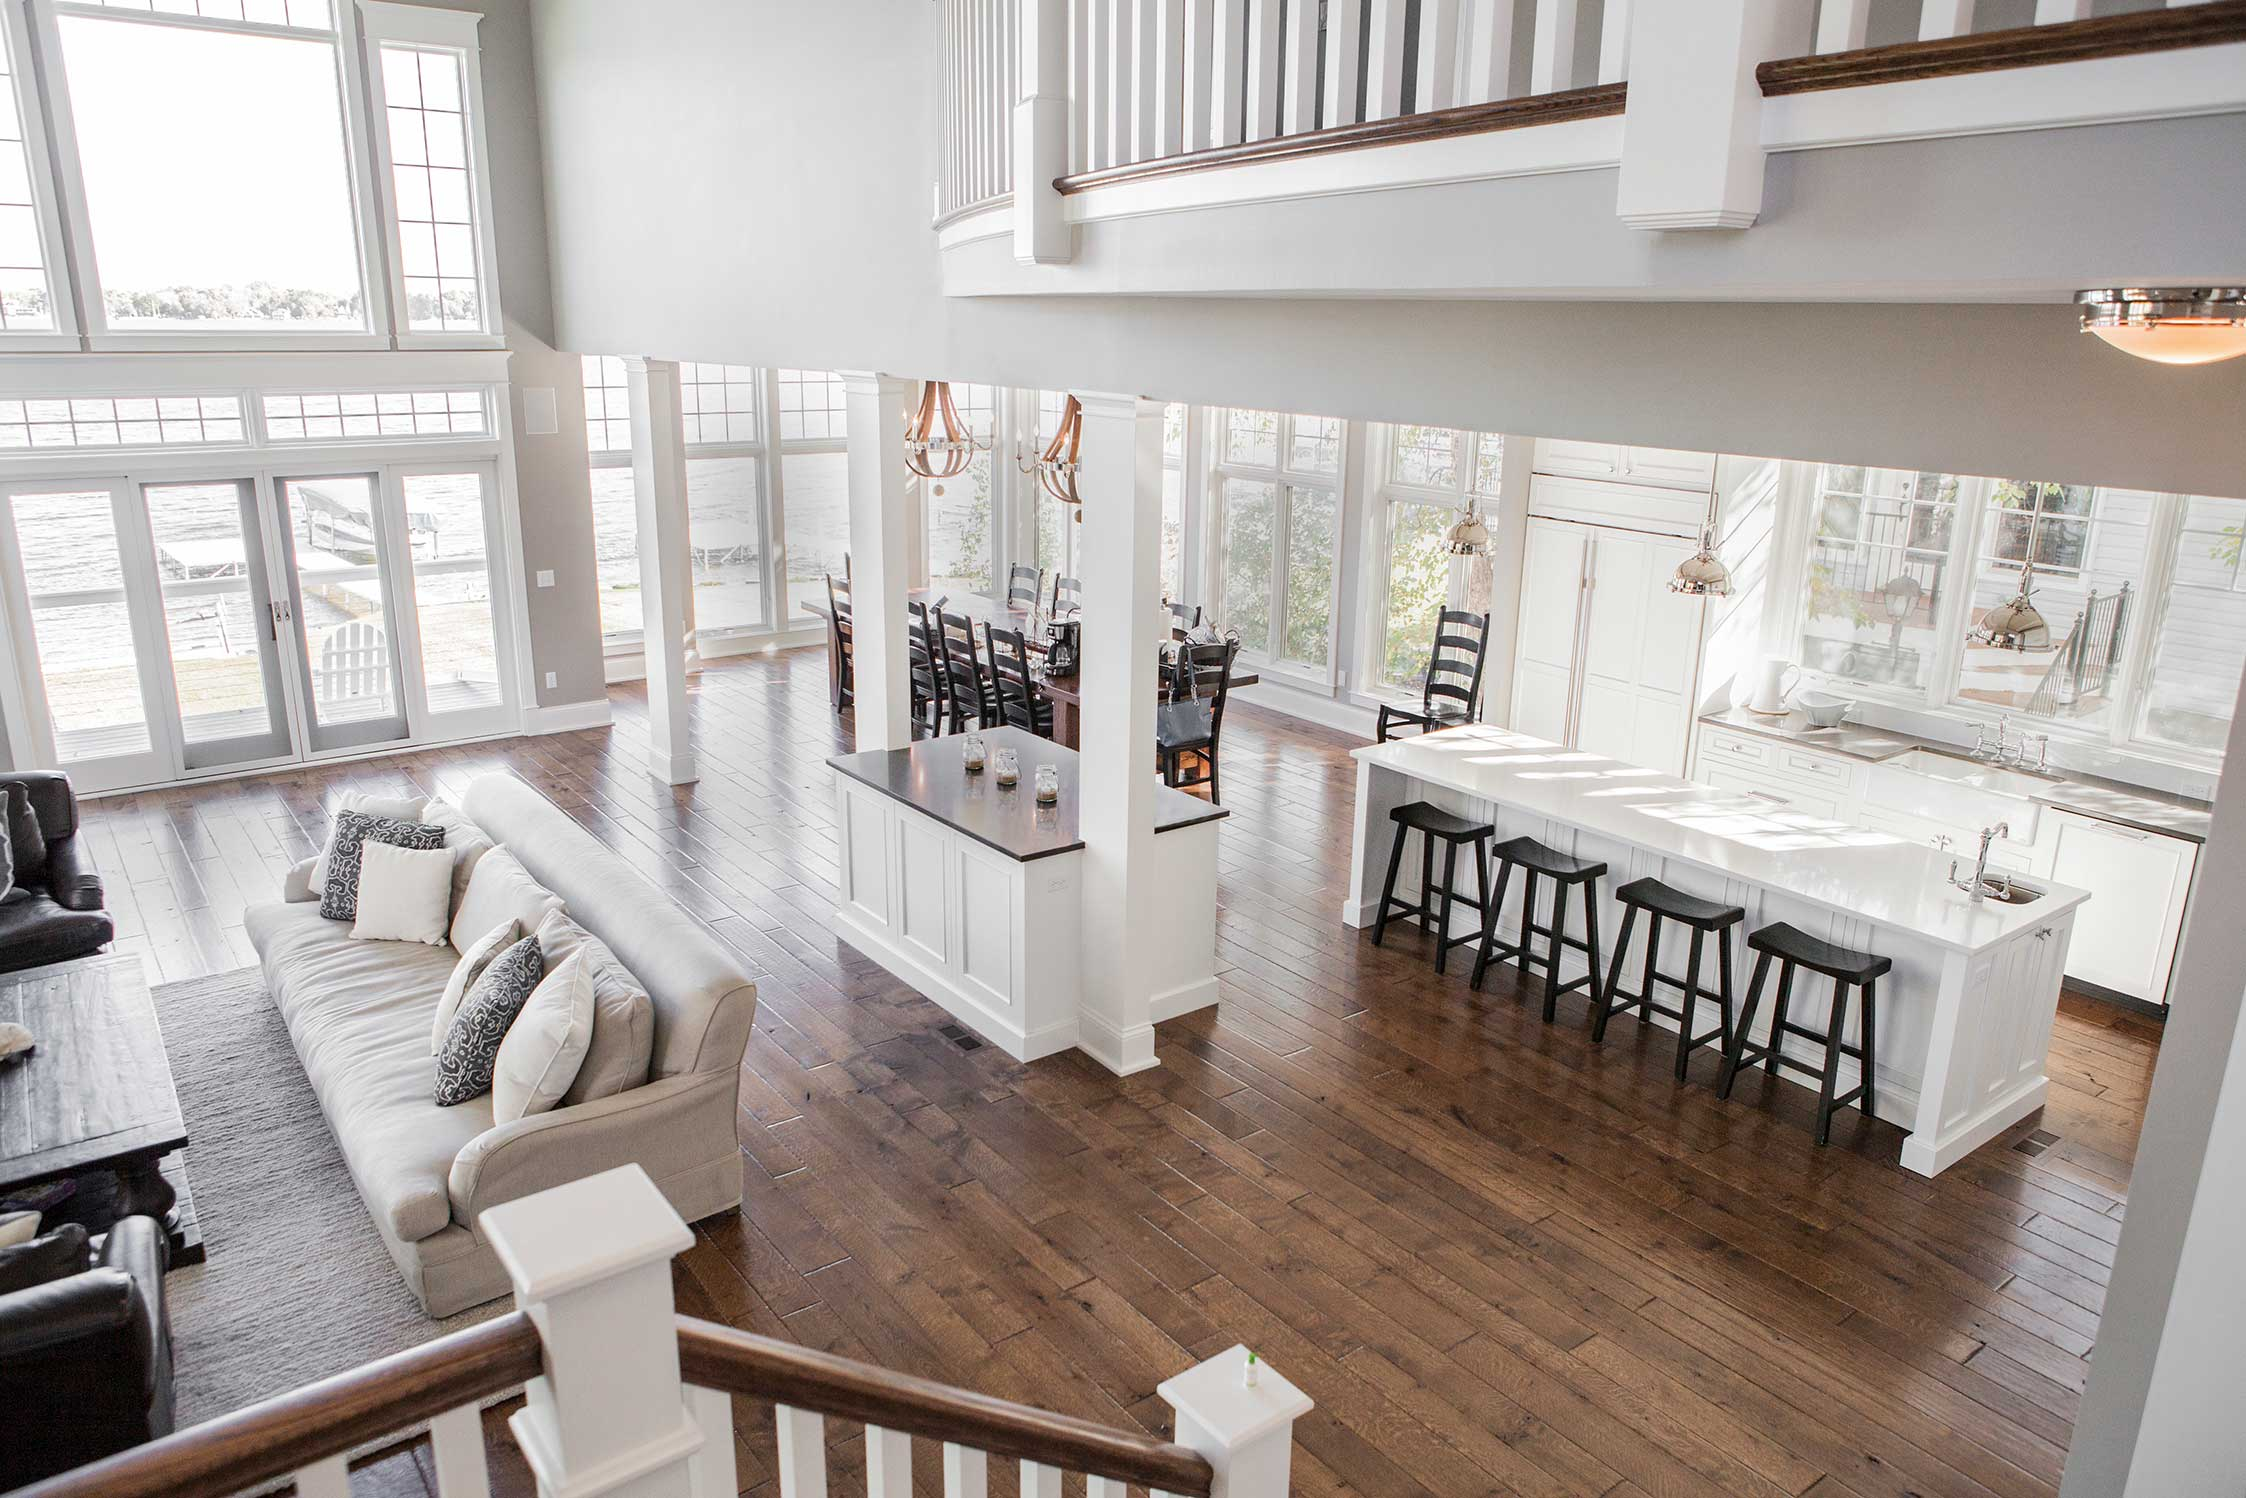 Banister view of living room, dining room, and kitchen